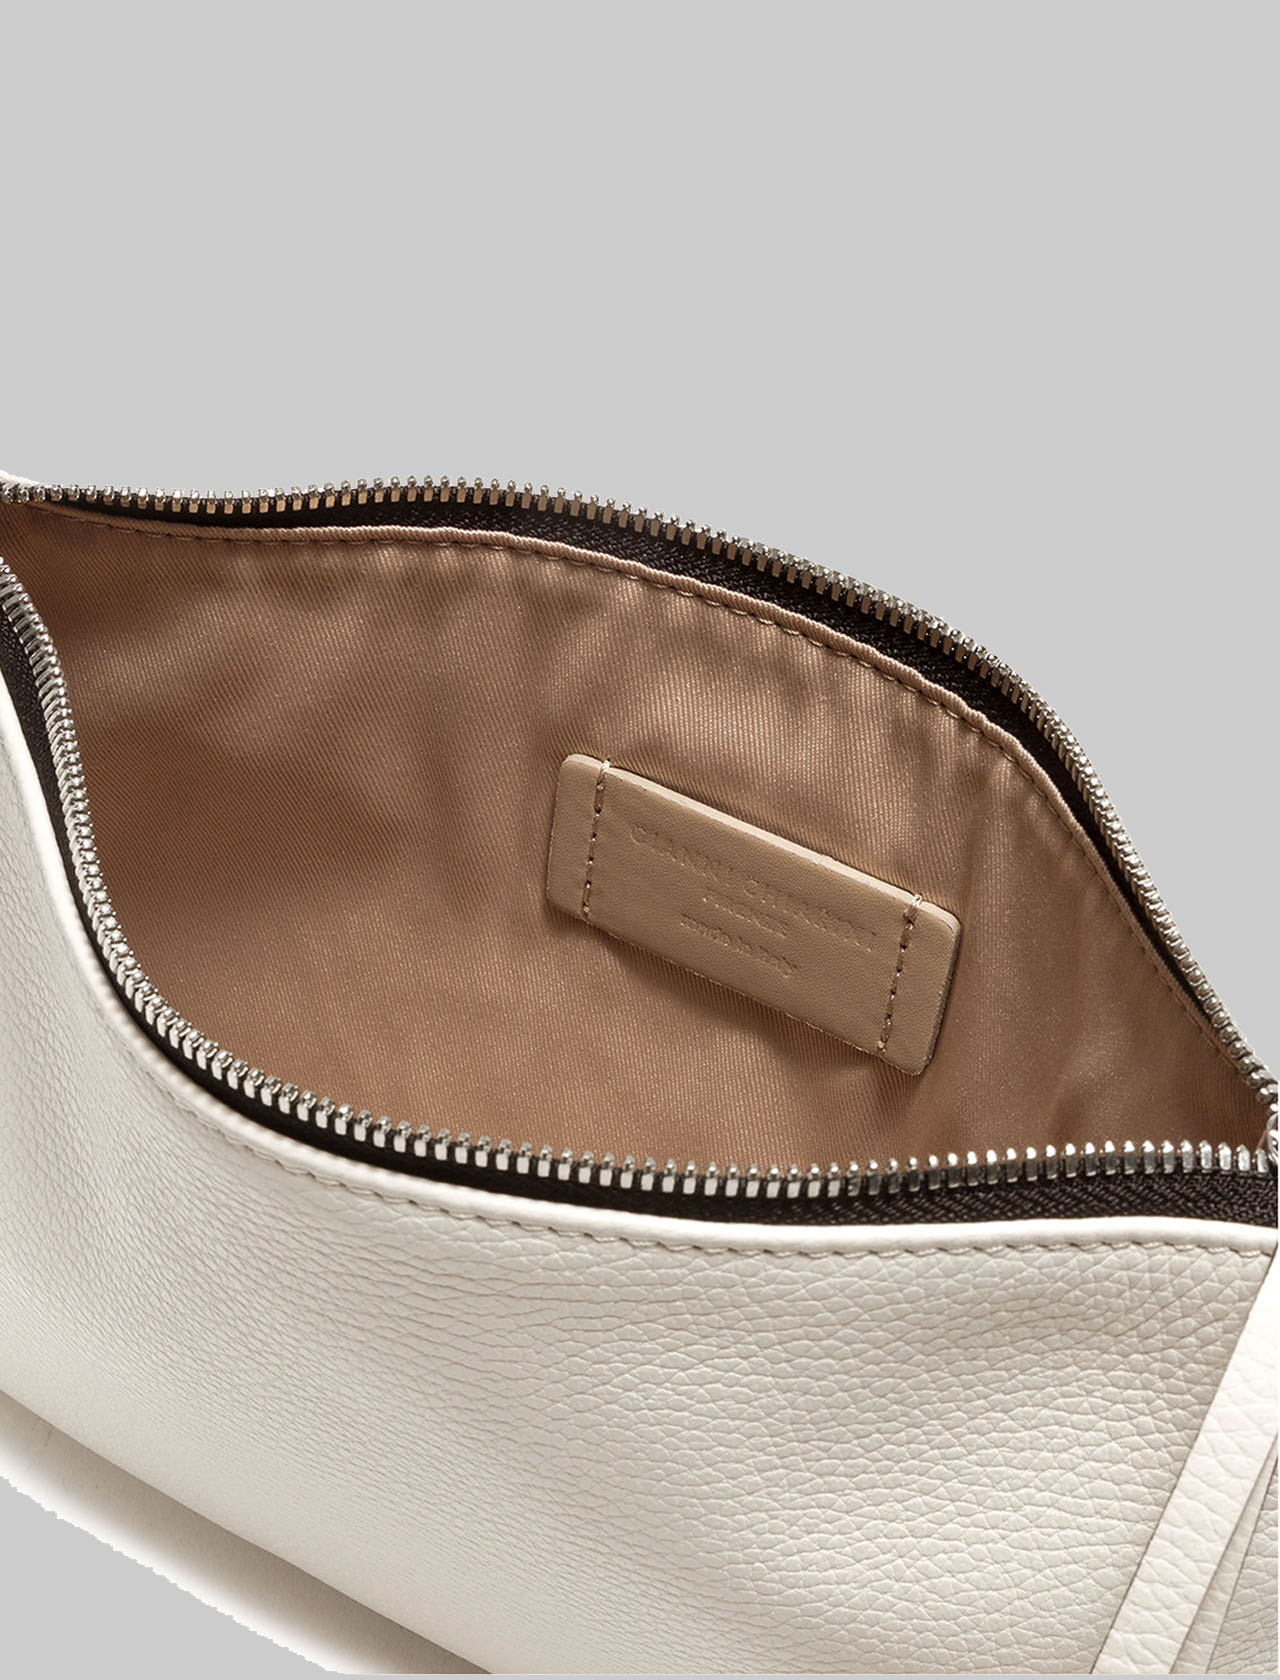 Hermy large women's clutch in cream leather with handle and adjustable and removable shoulder strap Gianni Chiarini | Bags and backpacks | BS36953089